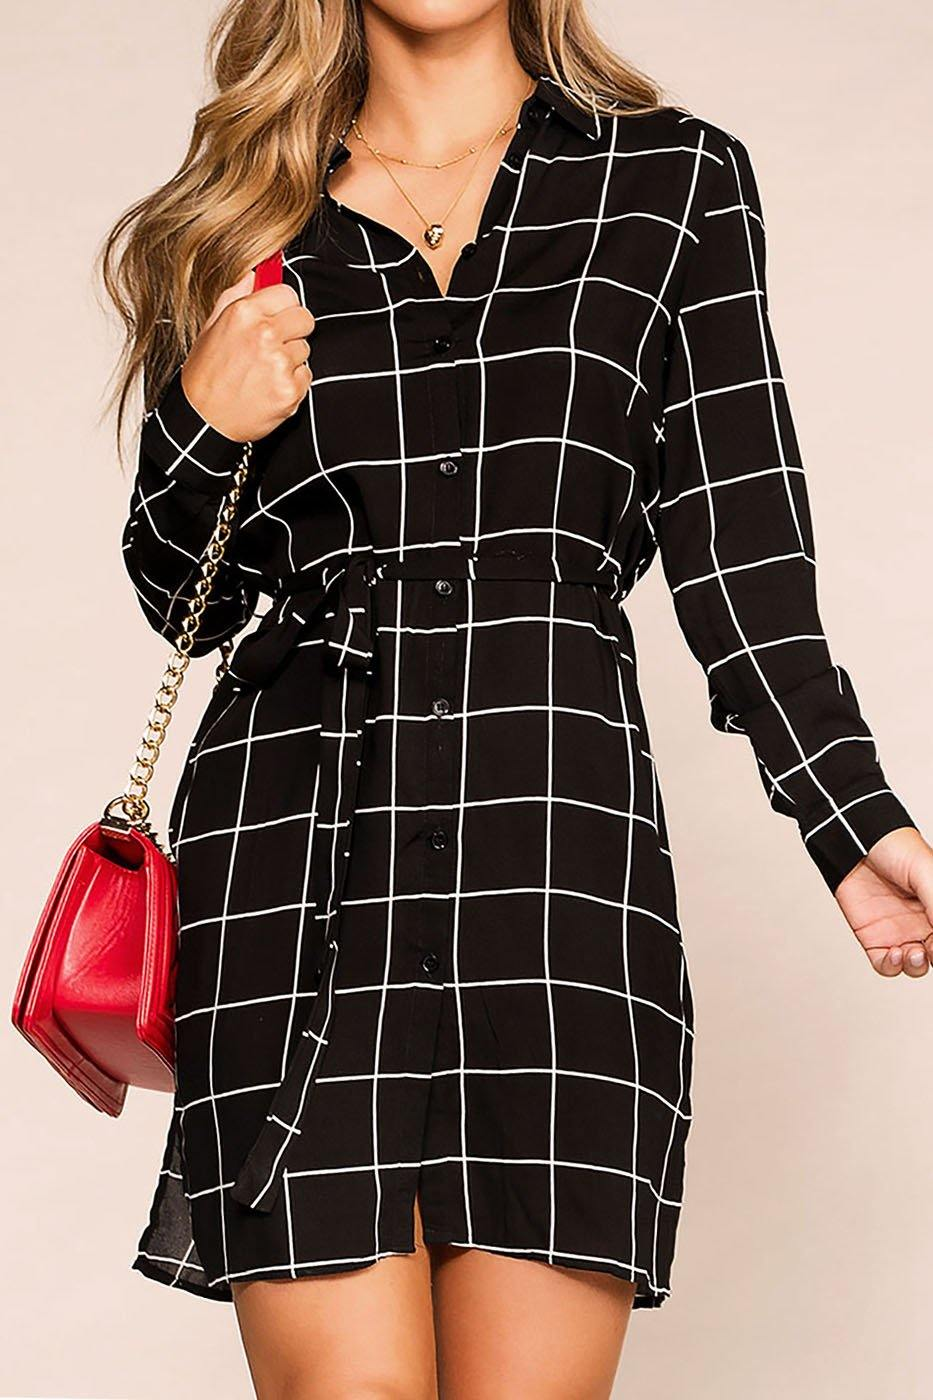 Marge Black Dress | Mosaic & Co